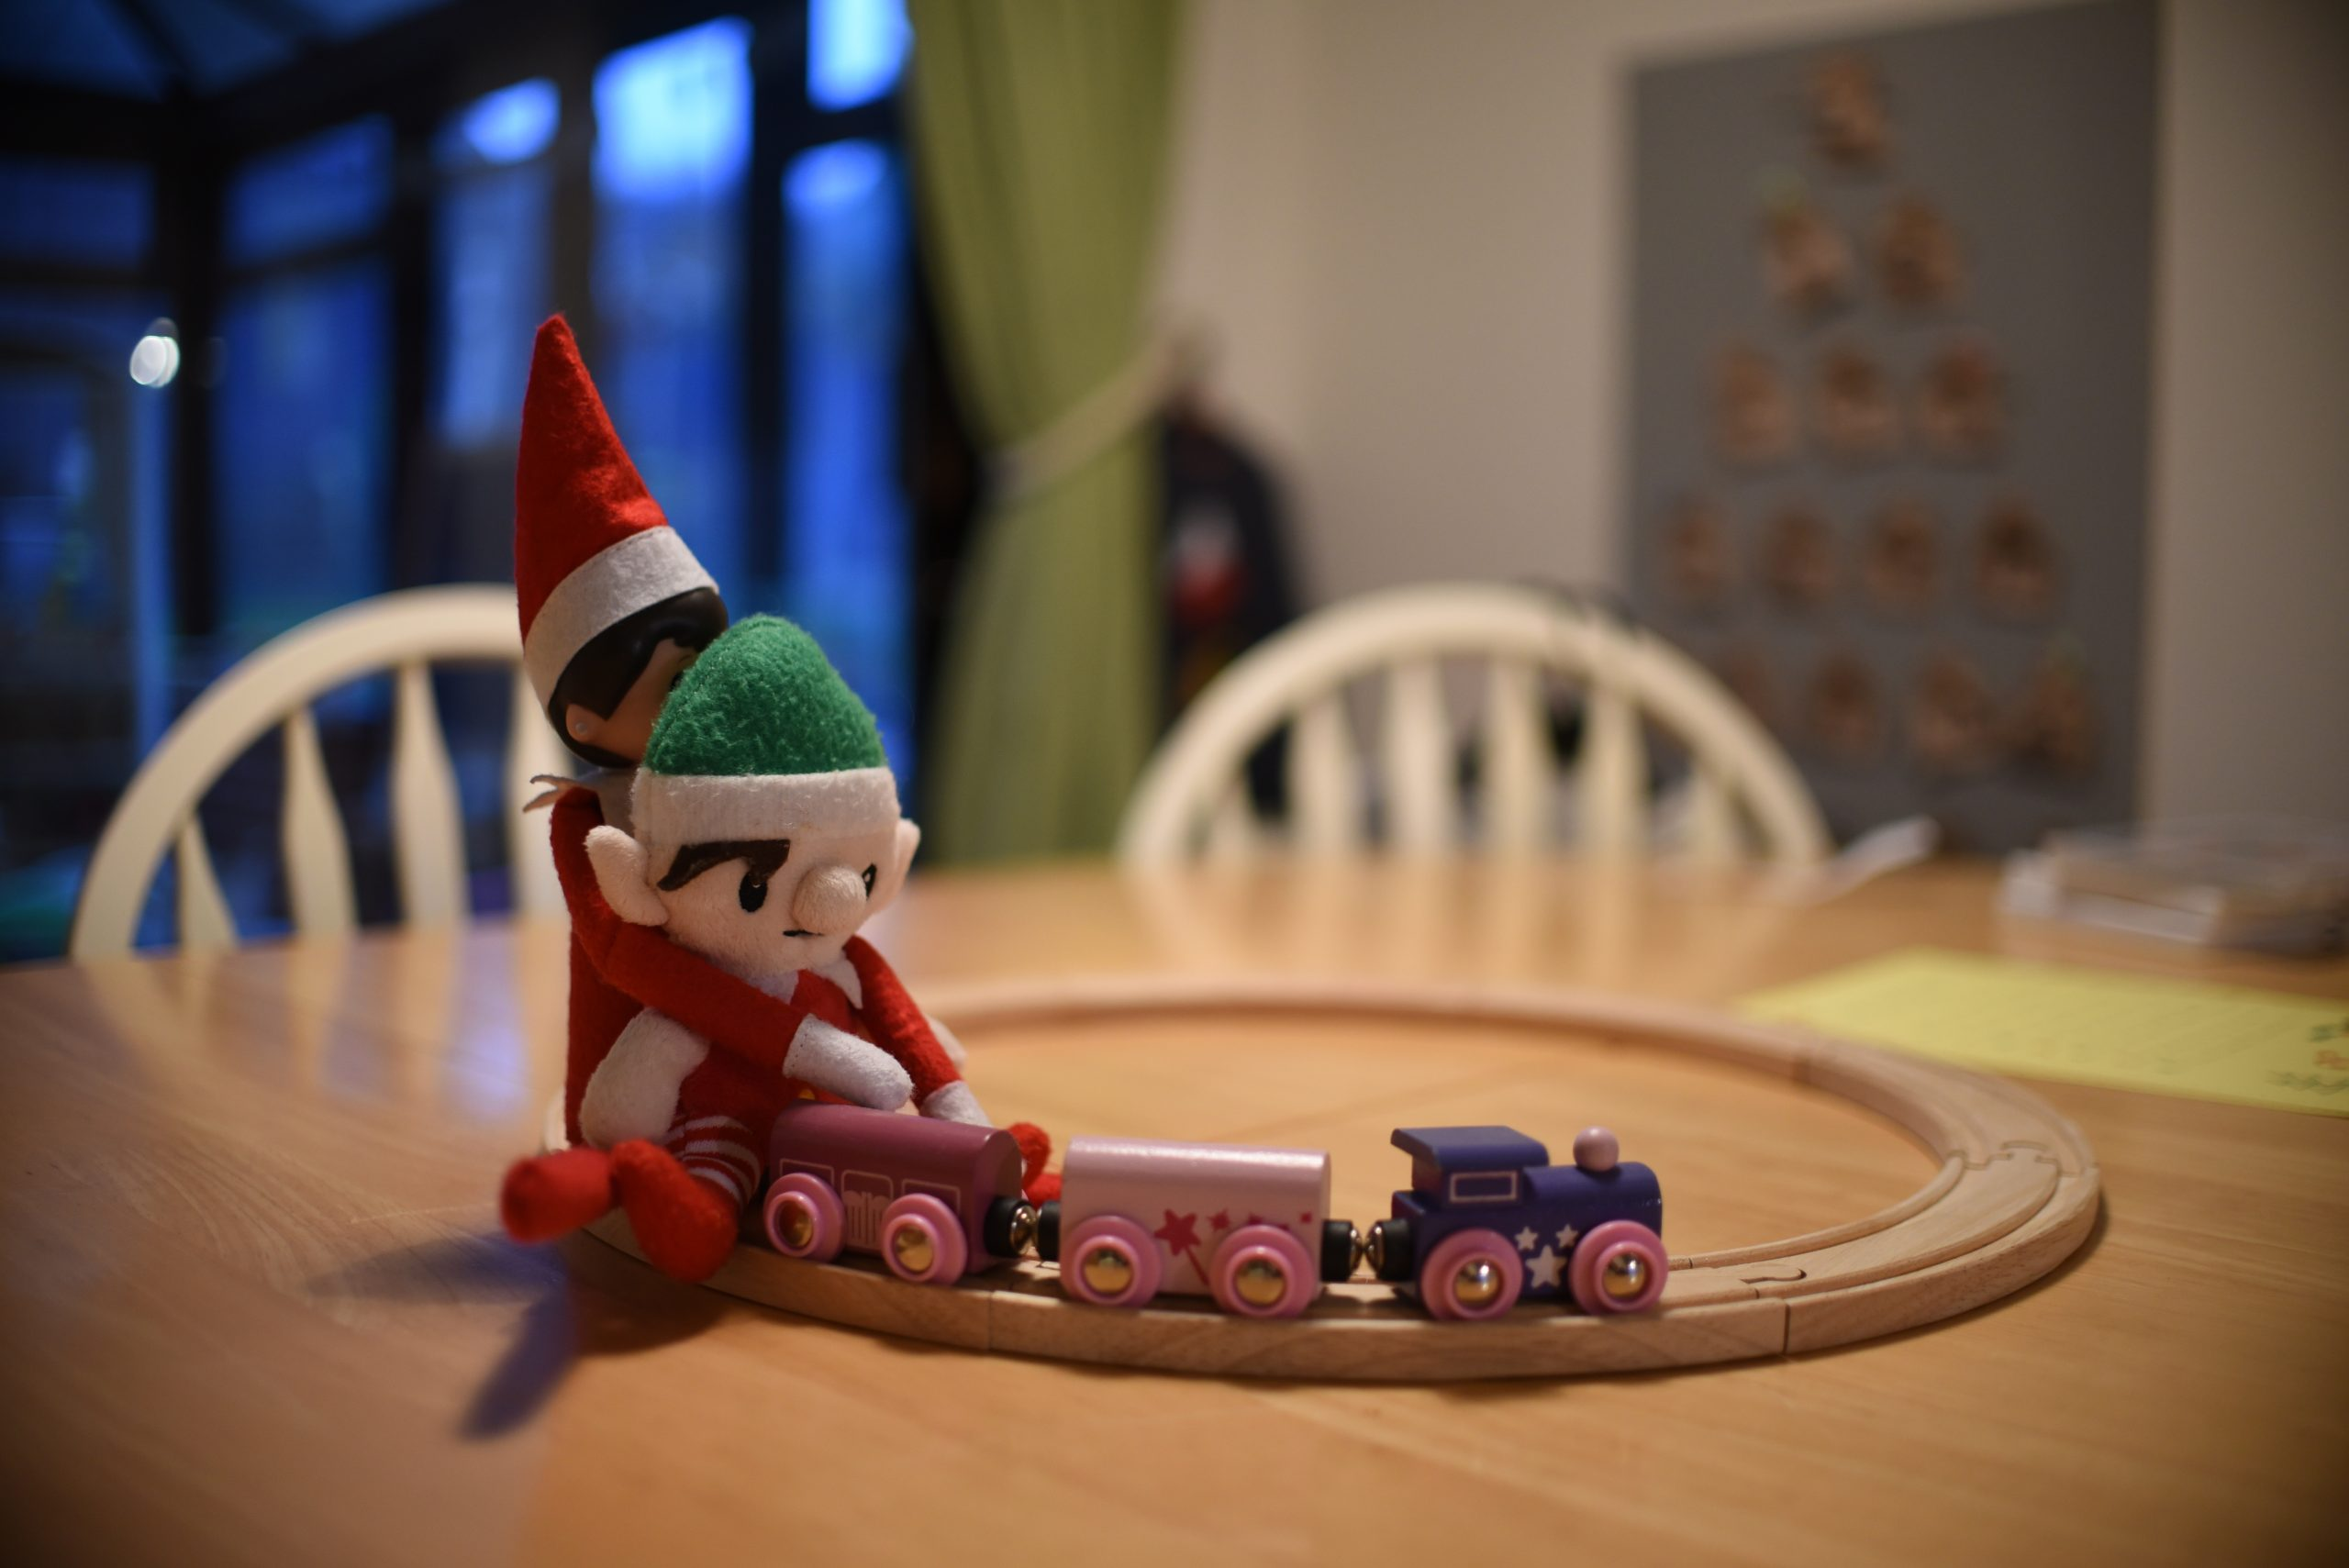 Elf on the shelf on a train